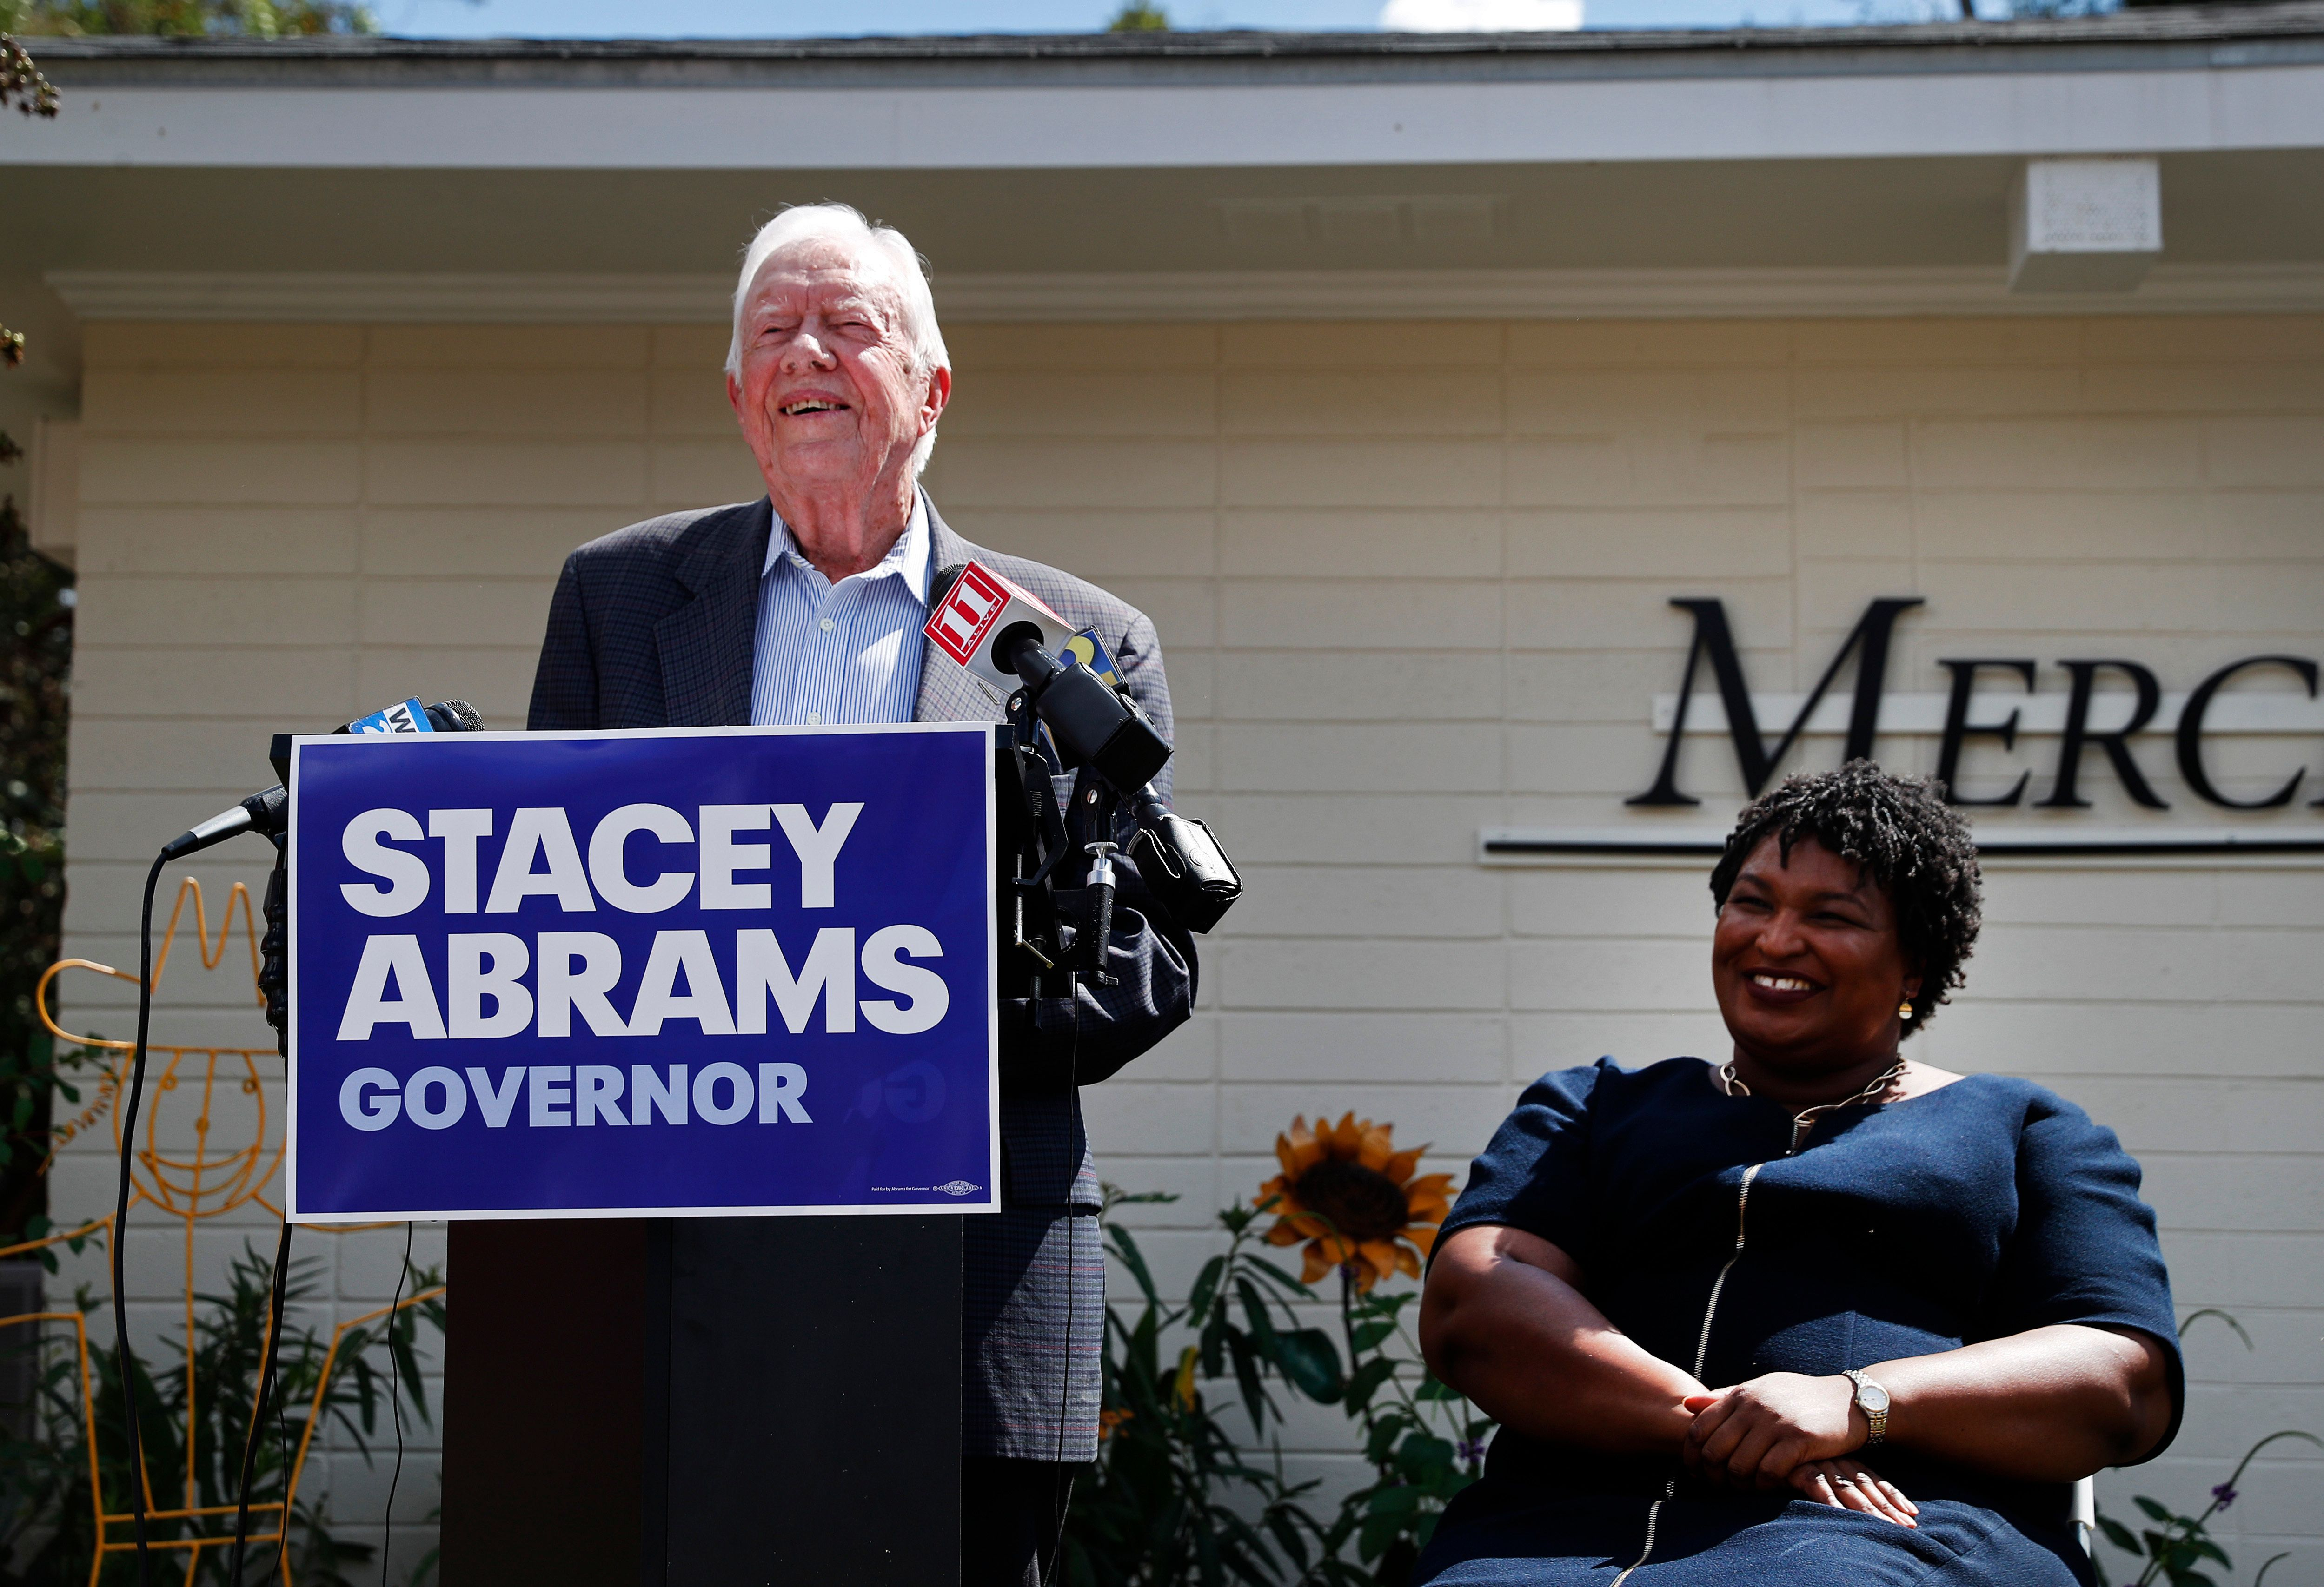 Former President Jimmy Carter (left) campaigning with Georgia's Democratic gubernatorial nominee Stacey Abrams (right).